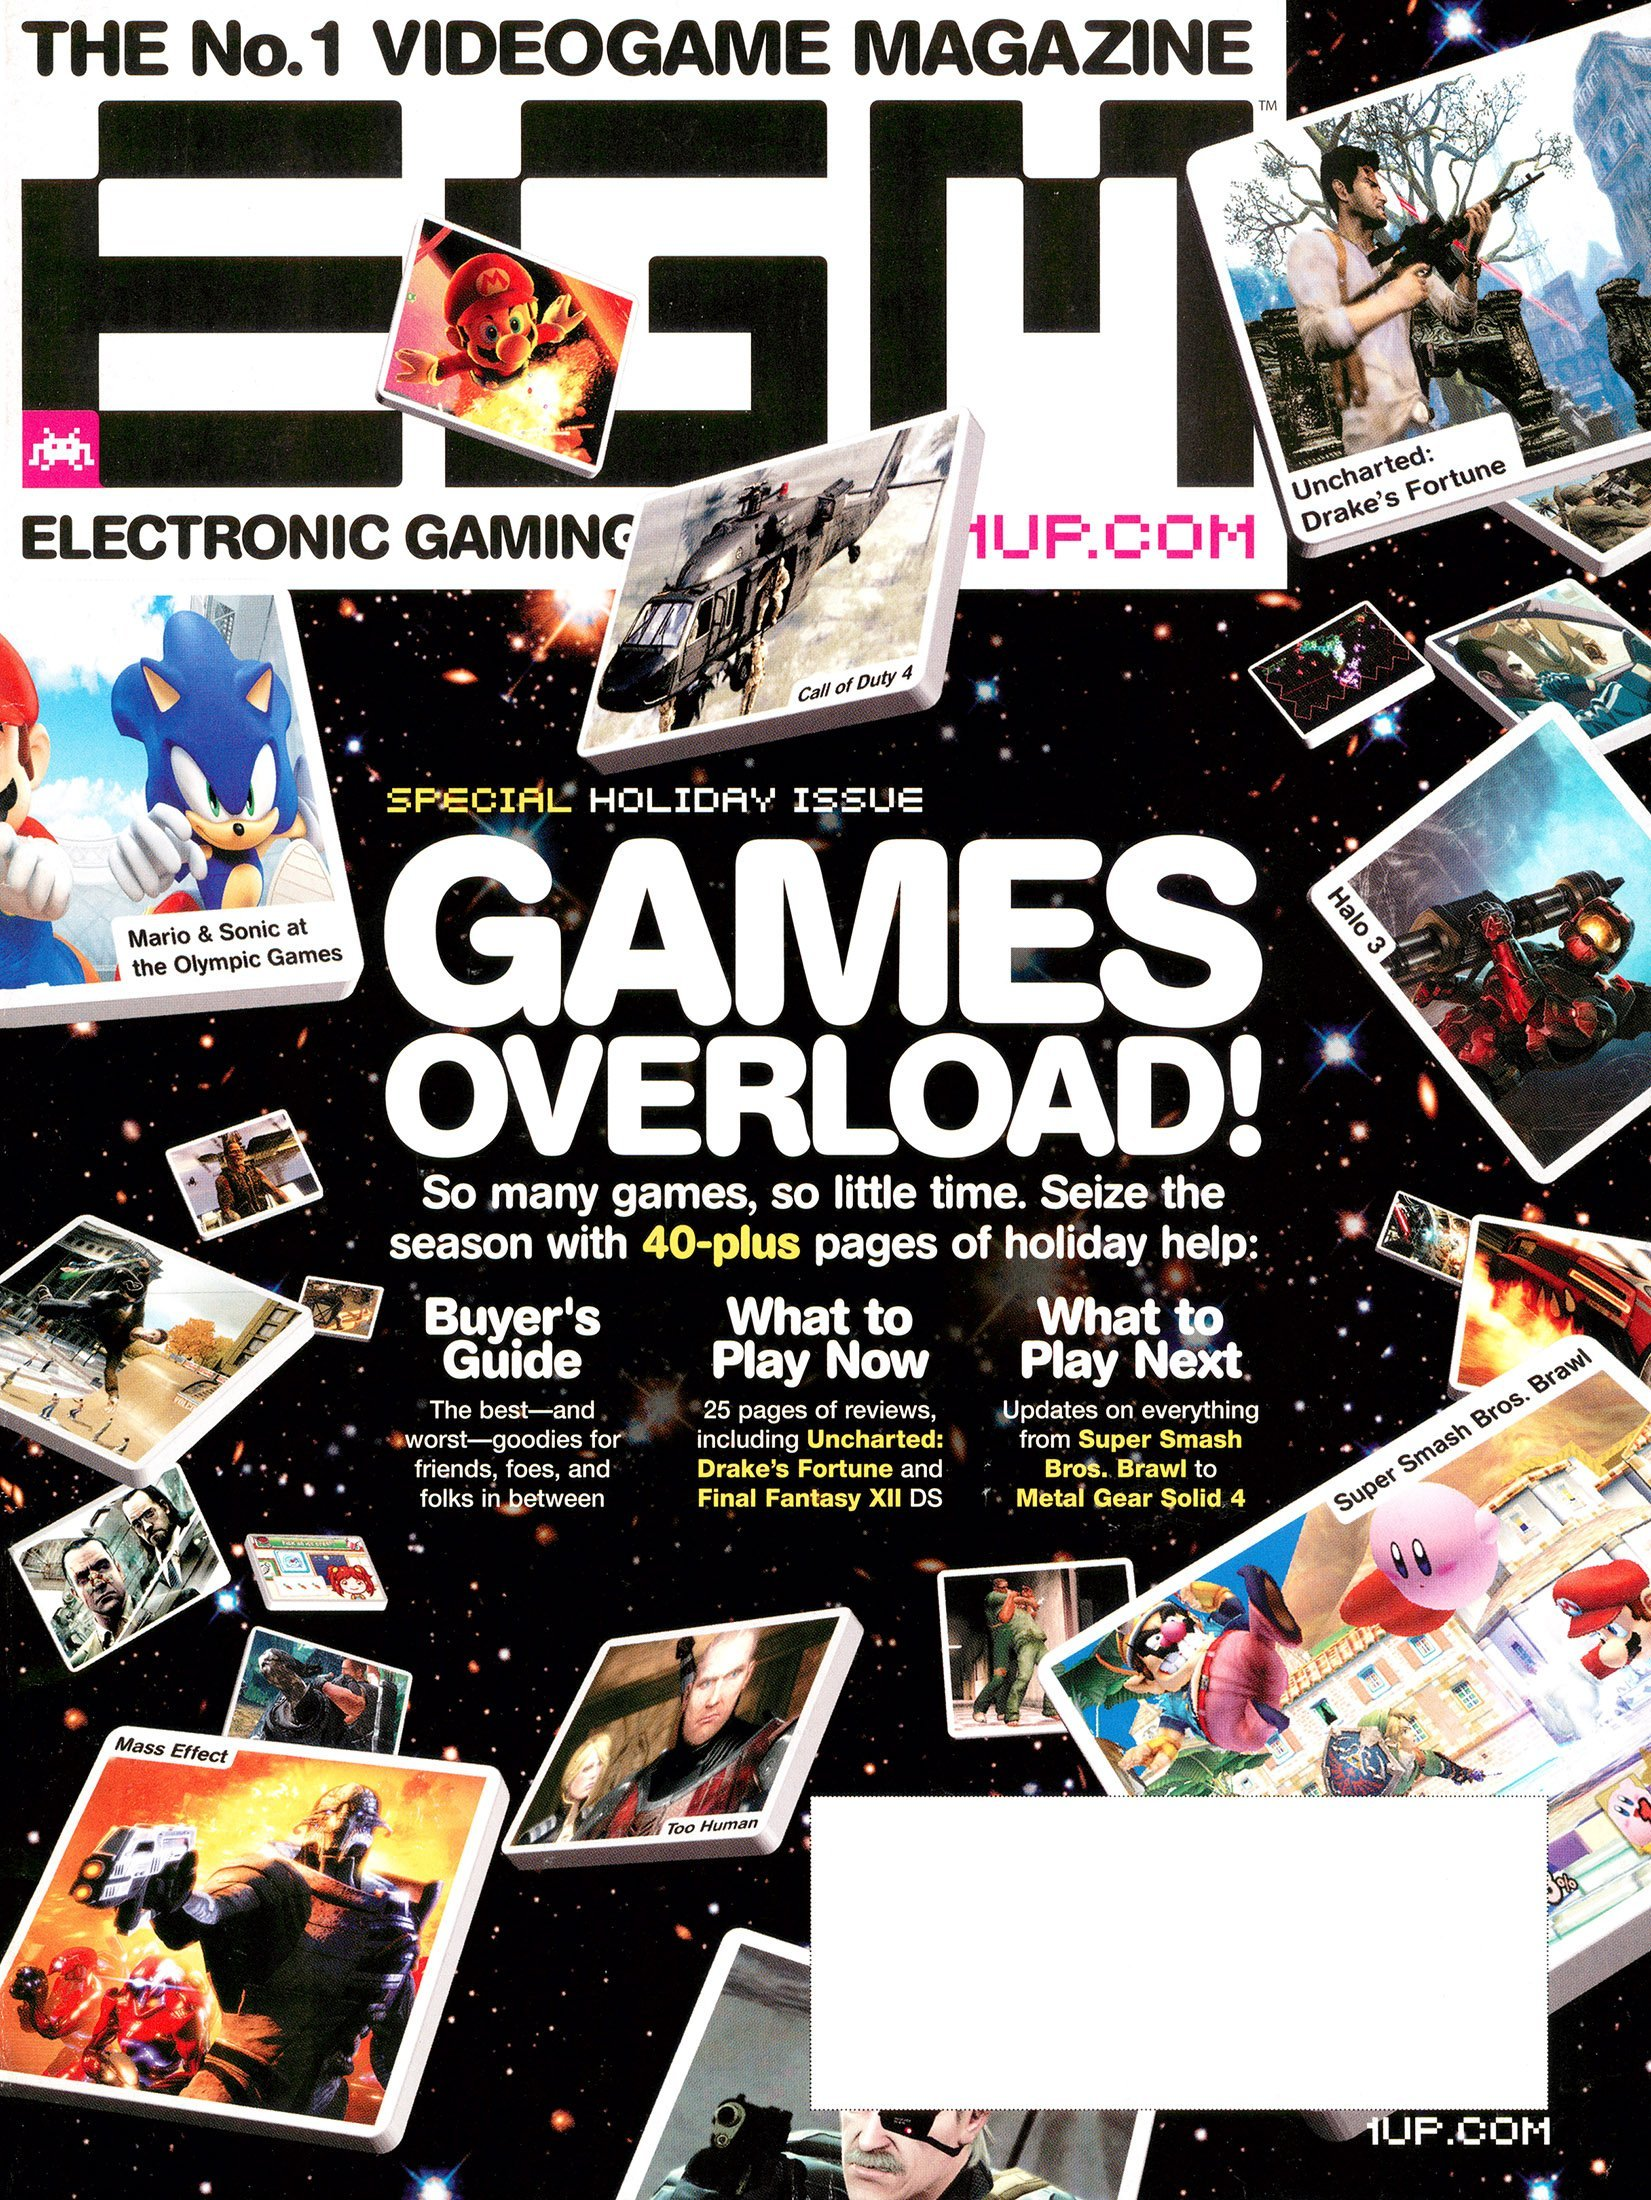 Electronic Gaming Monthly Issue 223 (Holiday 2007)